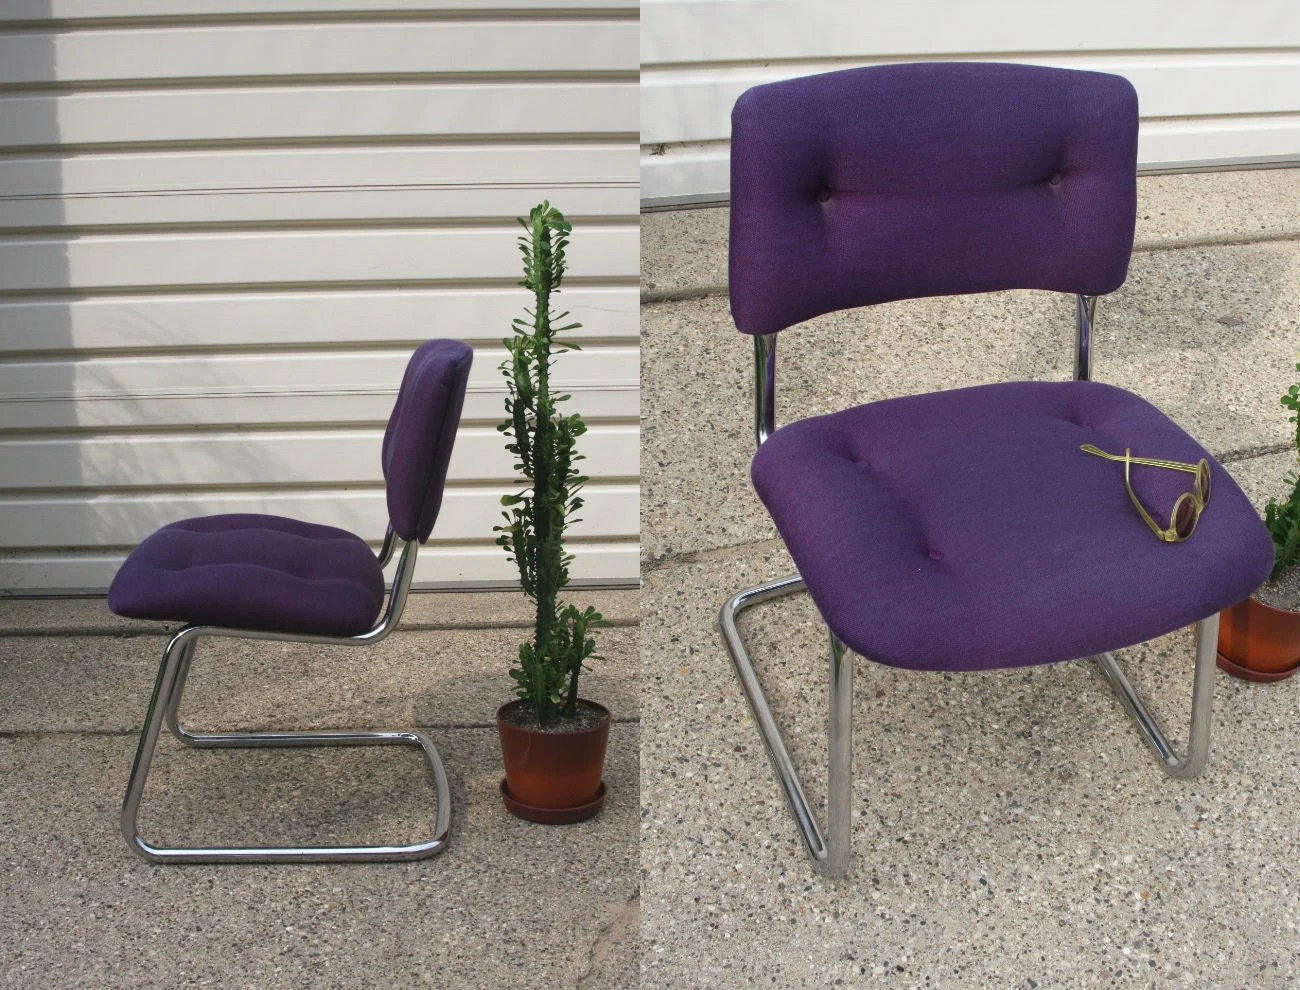 steelcase vintage chair white chairs for wedding chrome purple excellent condition